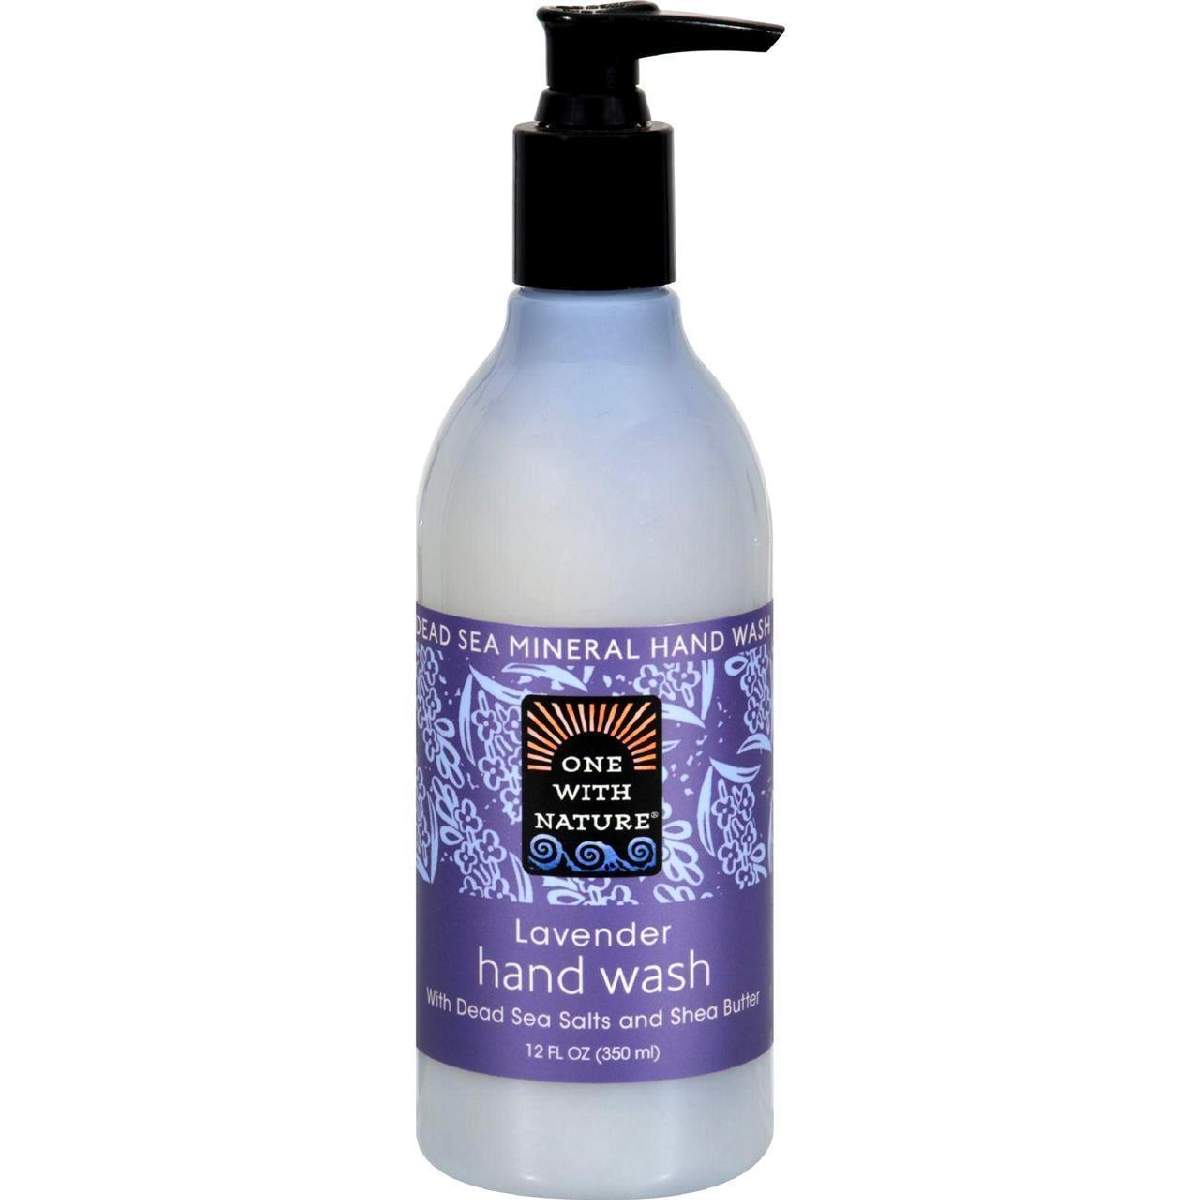 One With Nature Dead Sea Mineral Restorative Hand Wash Lavender - 12 Fl Oz